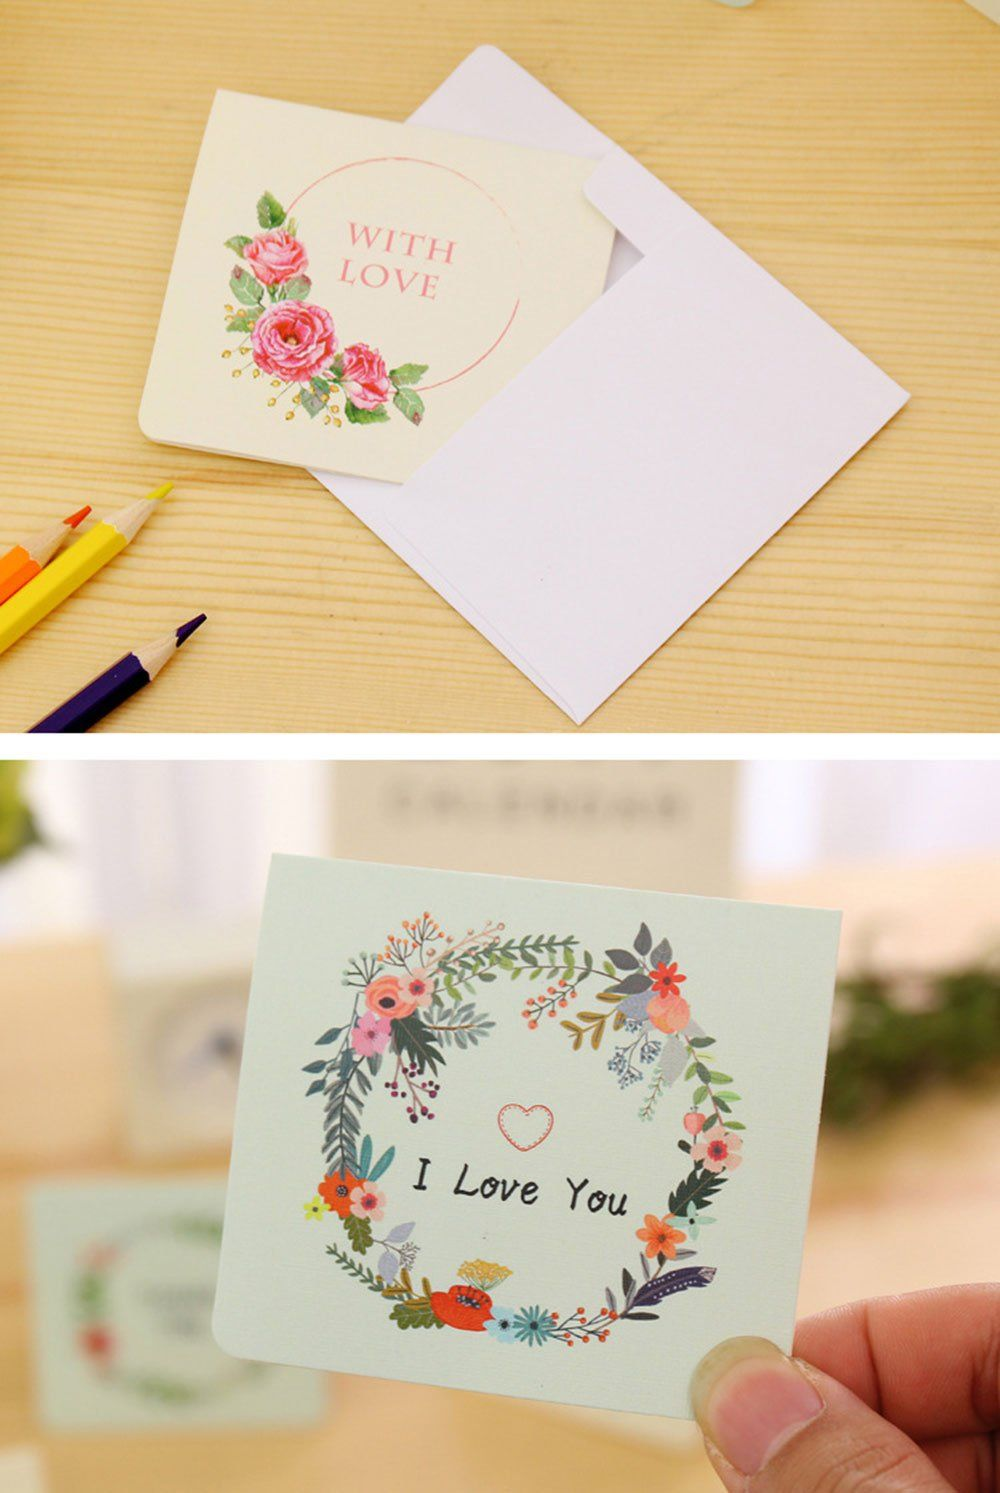 Floral Wreath Cards Girl Boss Boutique Shop Pinterest Products